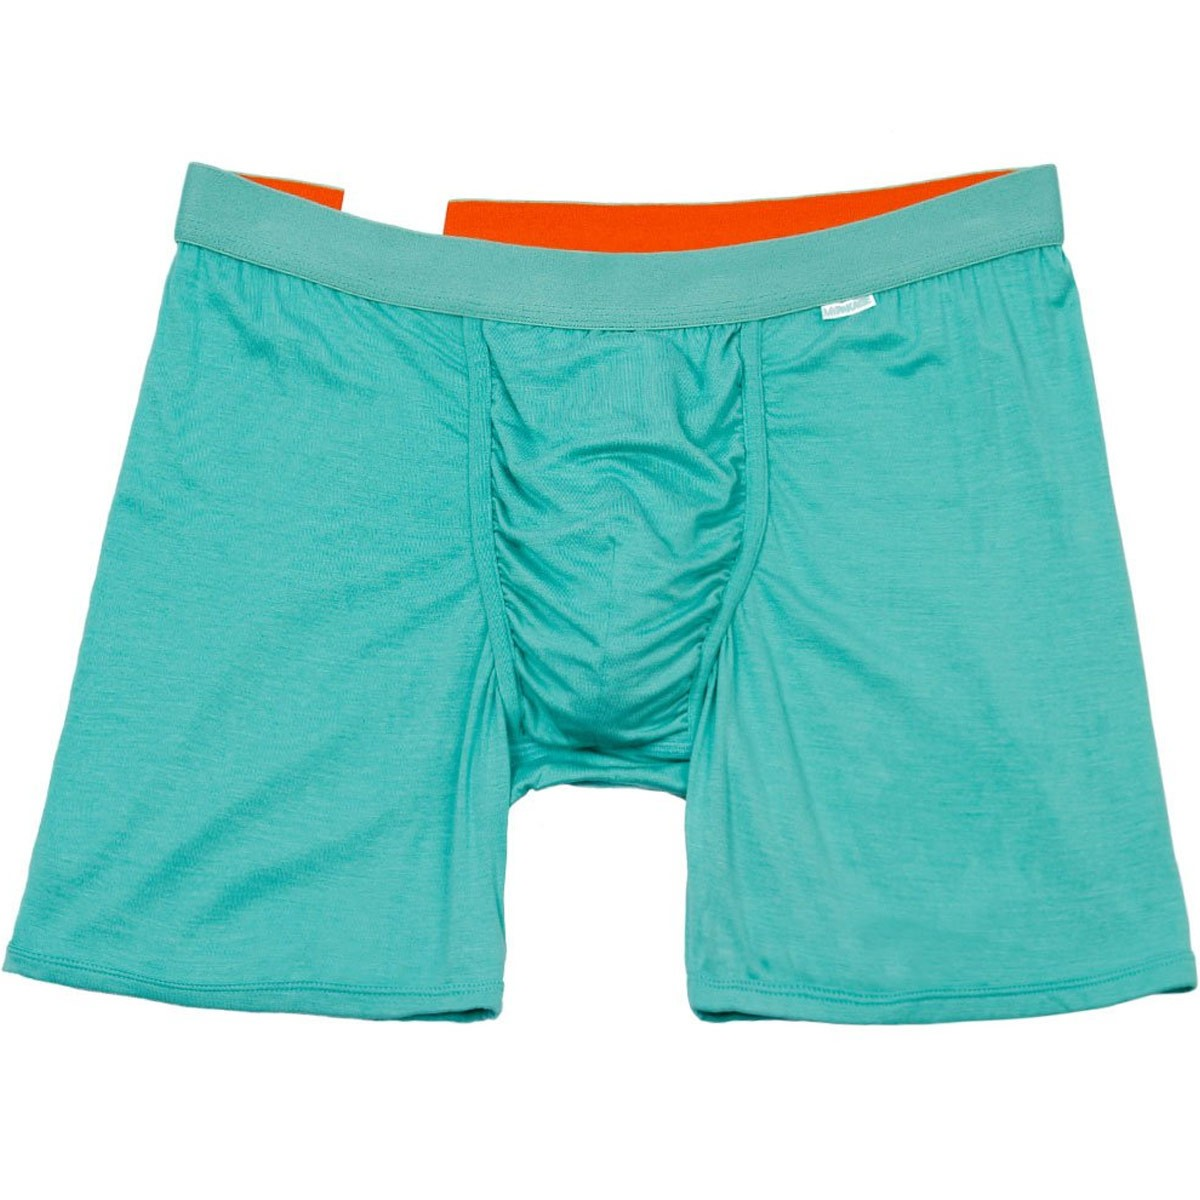 MyPakage Weekday Boxer Brief - Seafoam/Seafoam/Orange